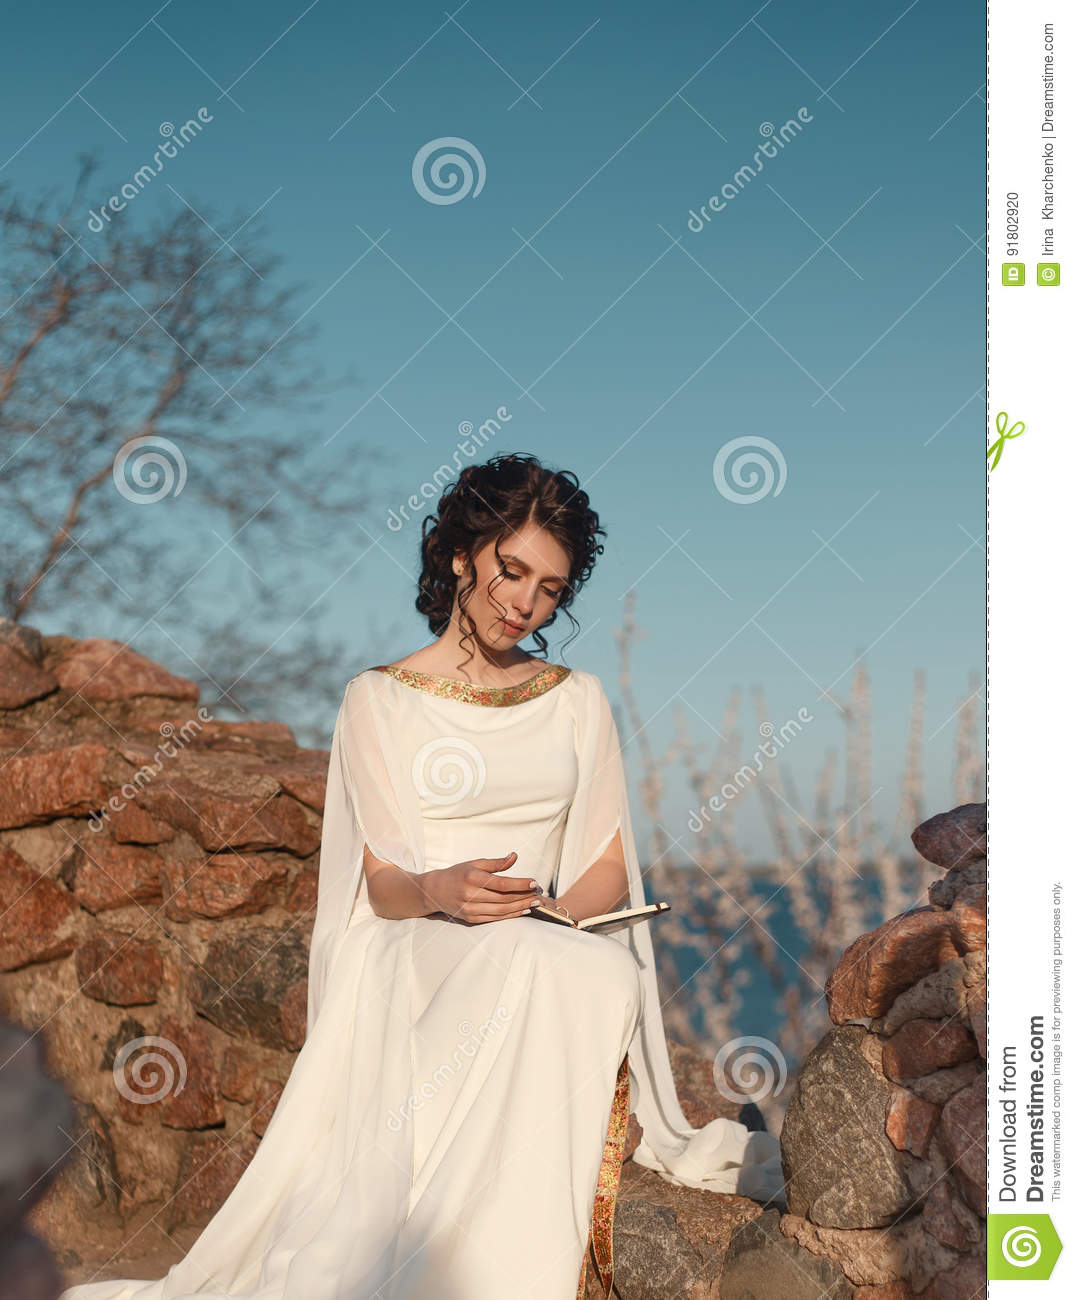 Beautiful Girl In A Greek Dress Stock Photo - Image of palace ...